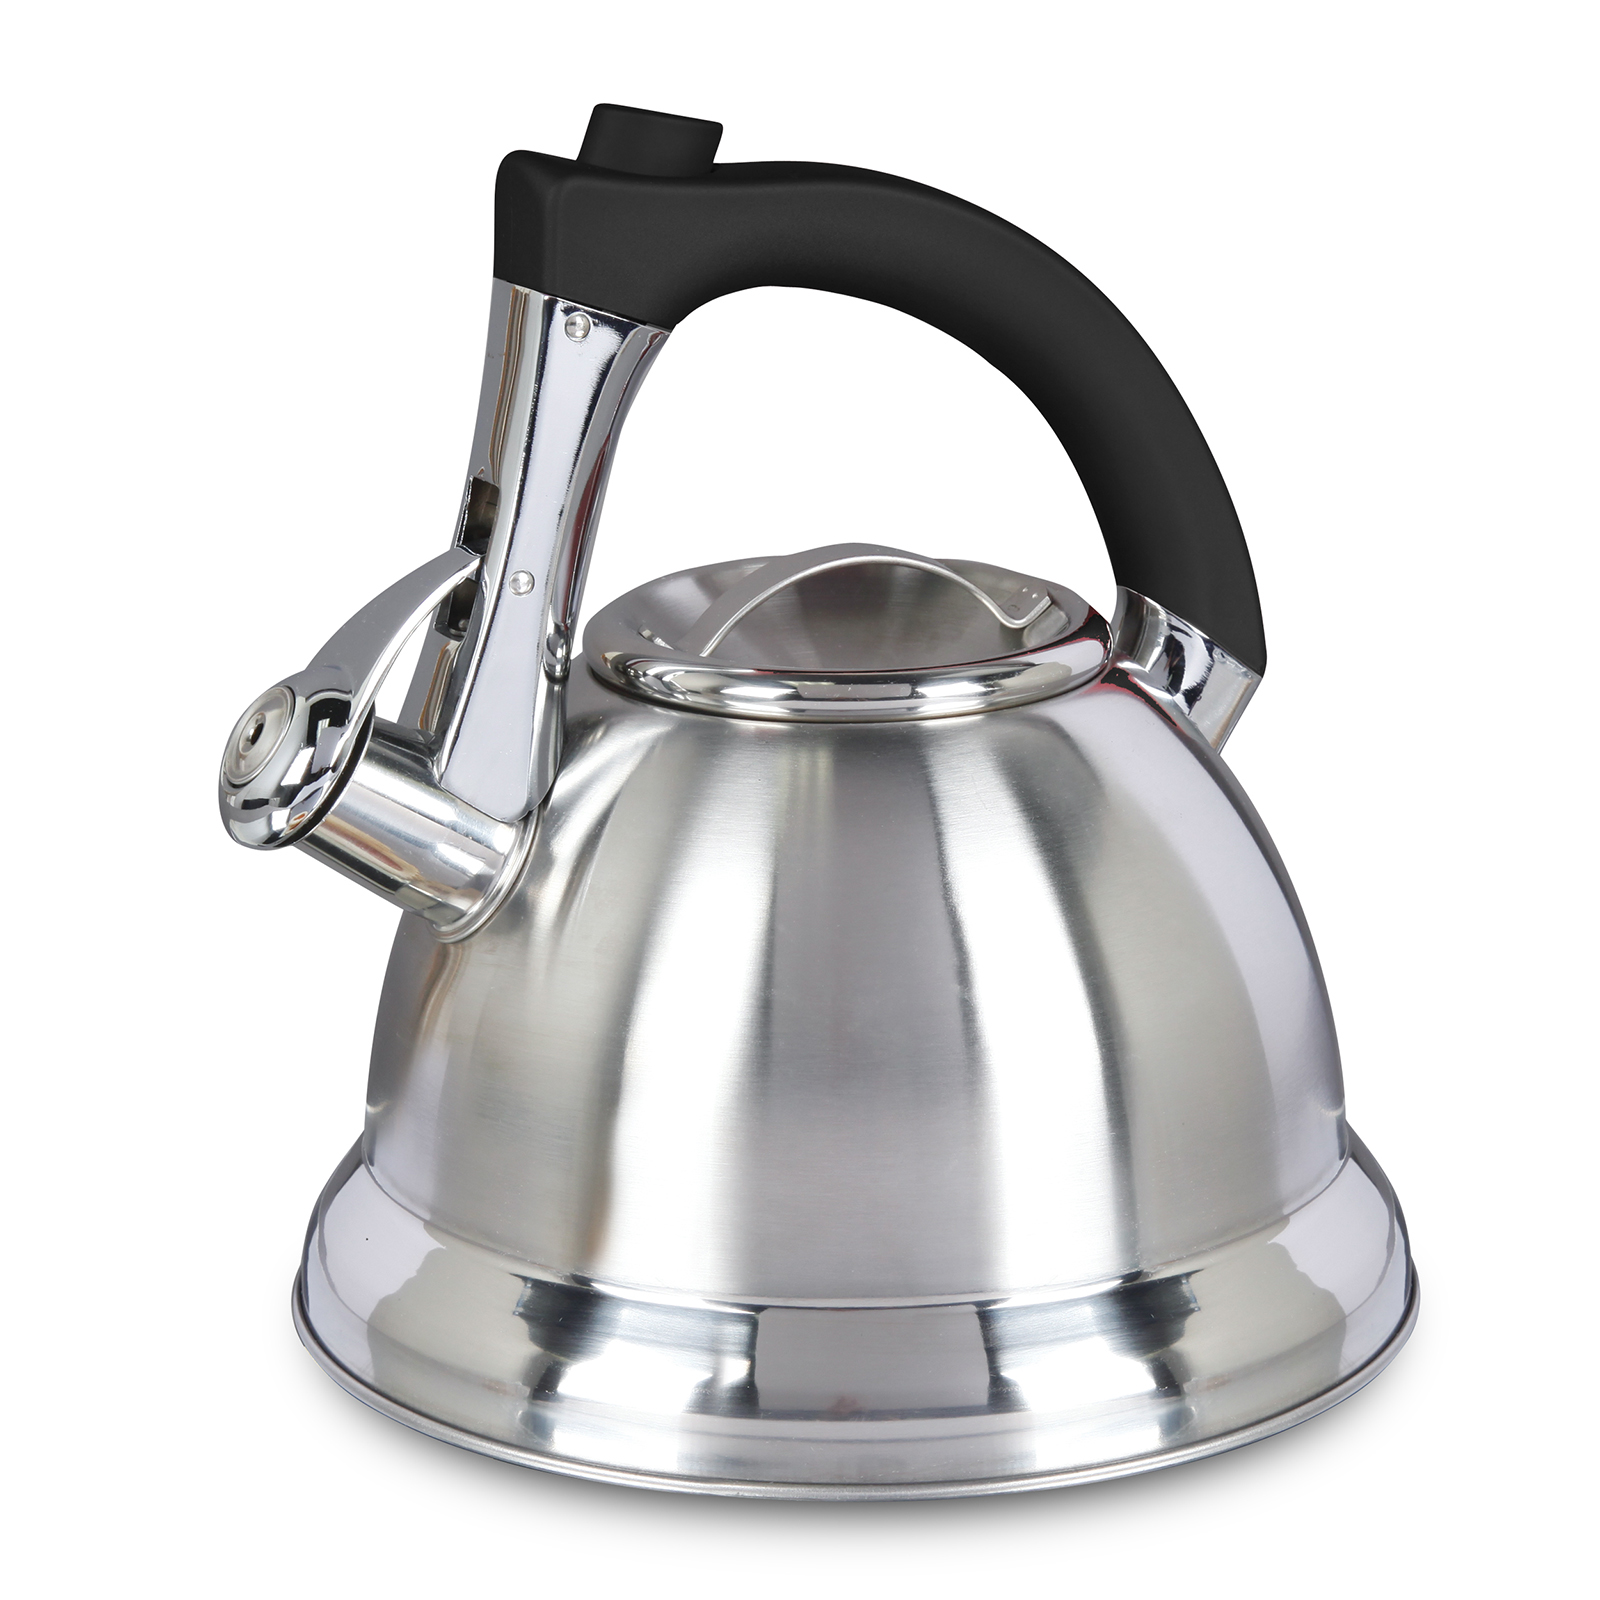 Mr. Coffee Collinsbrook 2.4 Qt Whistling Tea Kettle, Silver/Black